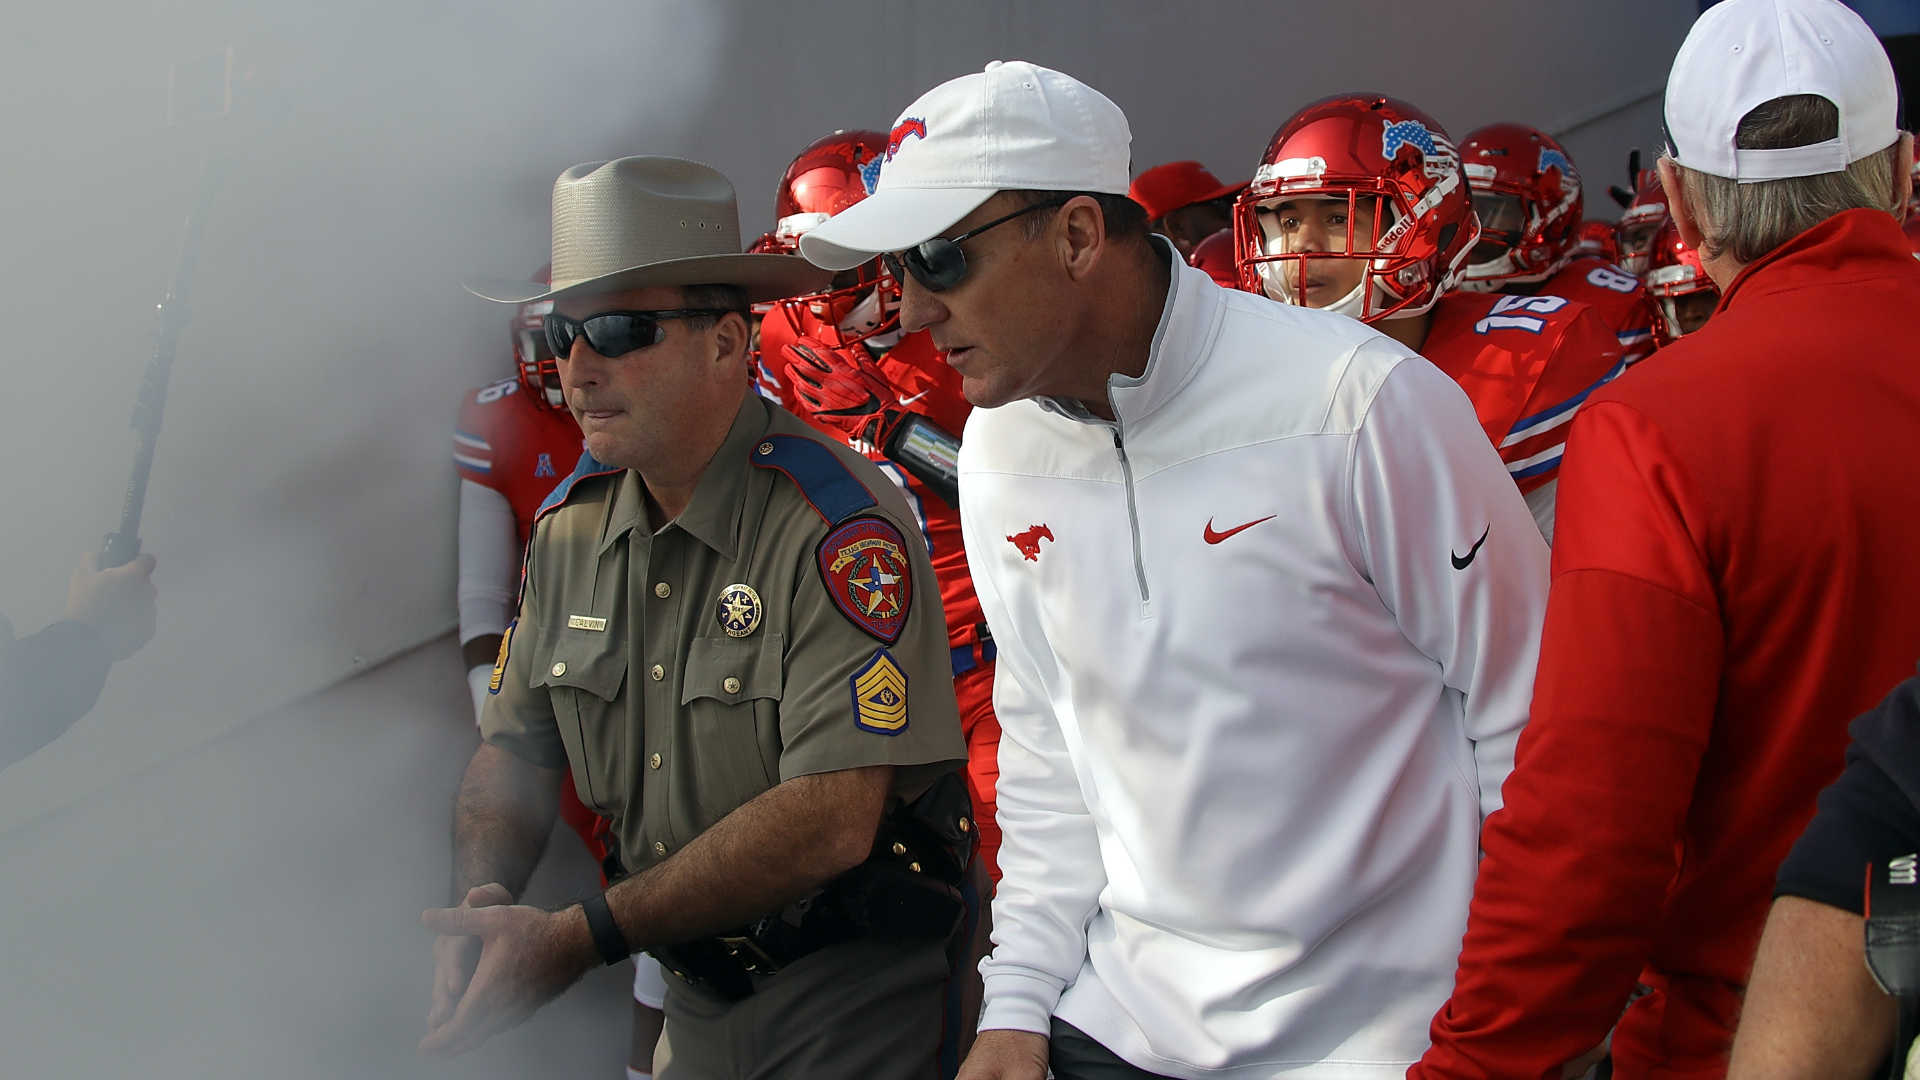 Chad Morris Reportedly Hired As Next Head Coach